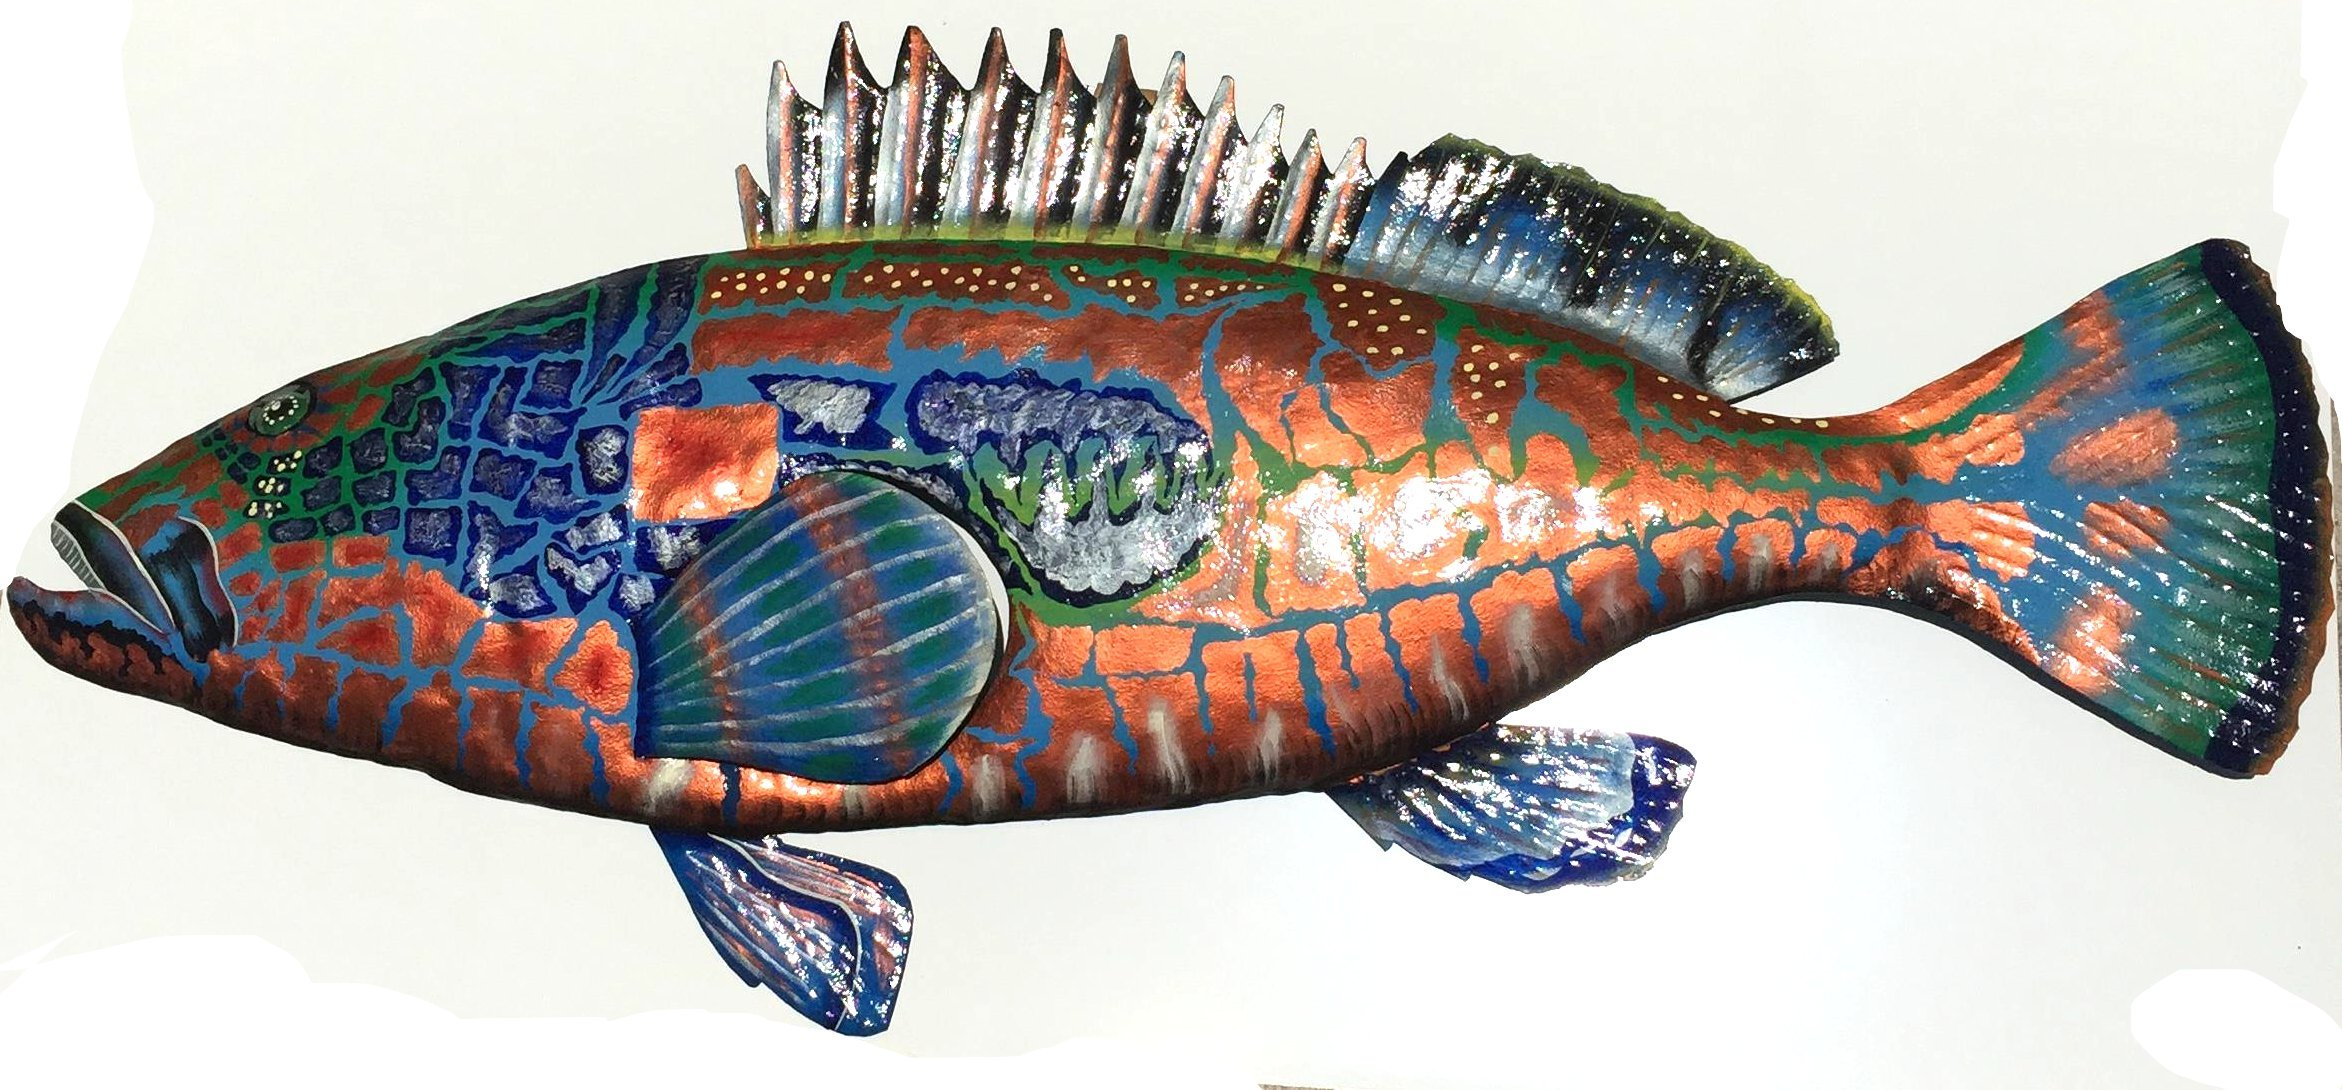 Bronze Grouper Wall Art Replica Mount - Haitian Metal Art (48 INCH) by Old Duga